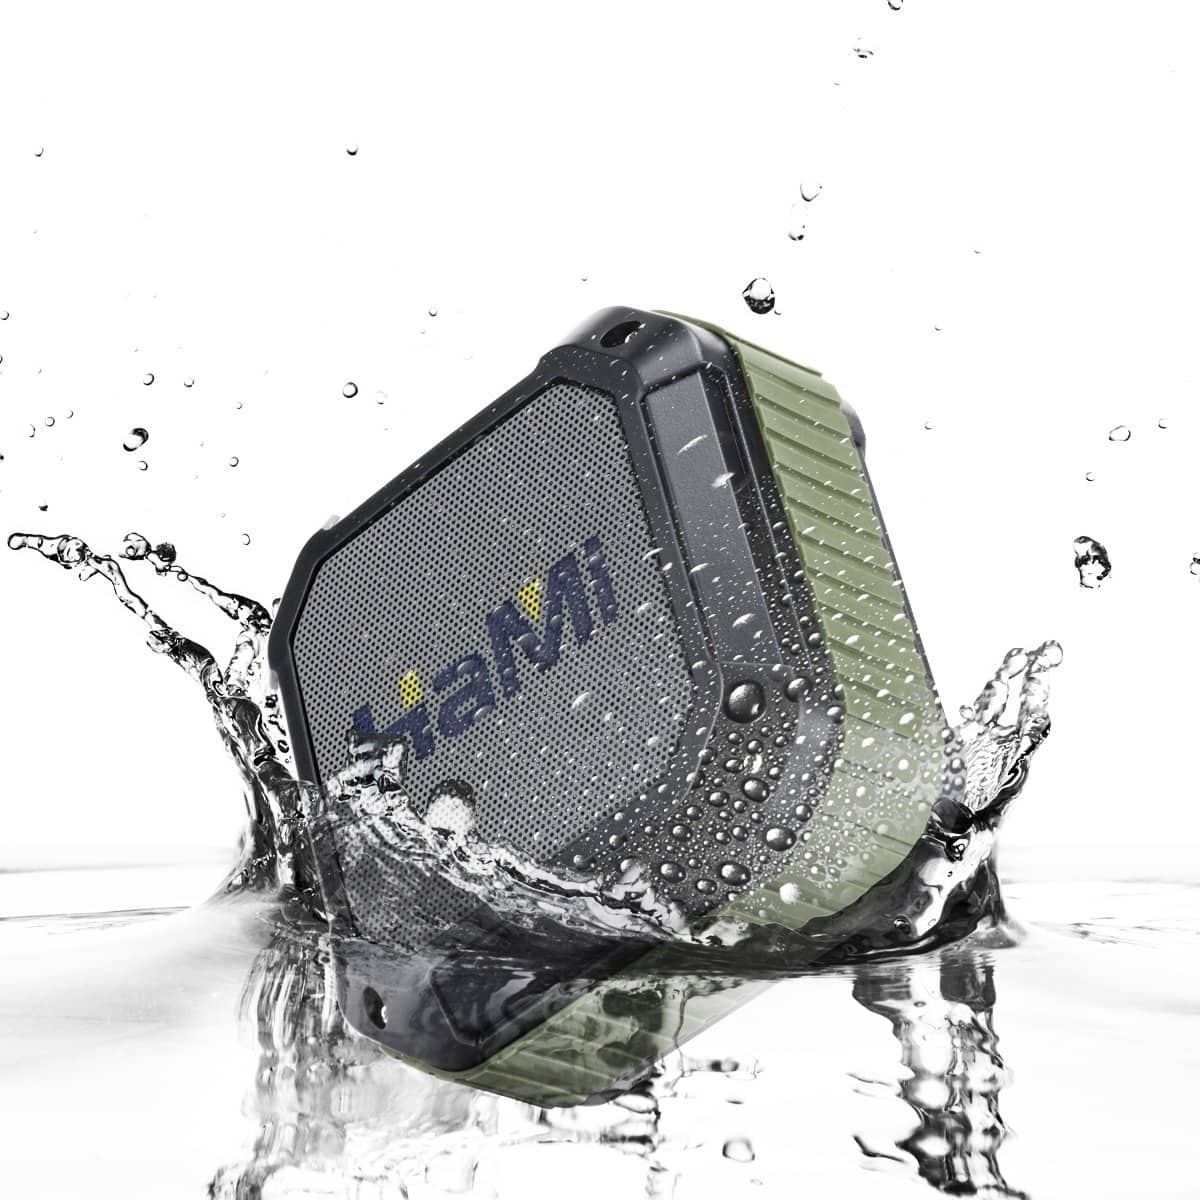 HaMi Waterproof Bluetooth Speakers, Portable Wireless Speakers 4.0 with 12 Hour Playtime, Rugged Shockproof Shower Speaker w/ Built-In Microphone $6.99 @Amazon